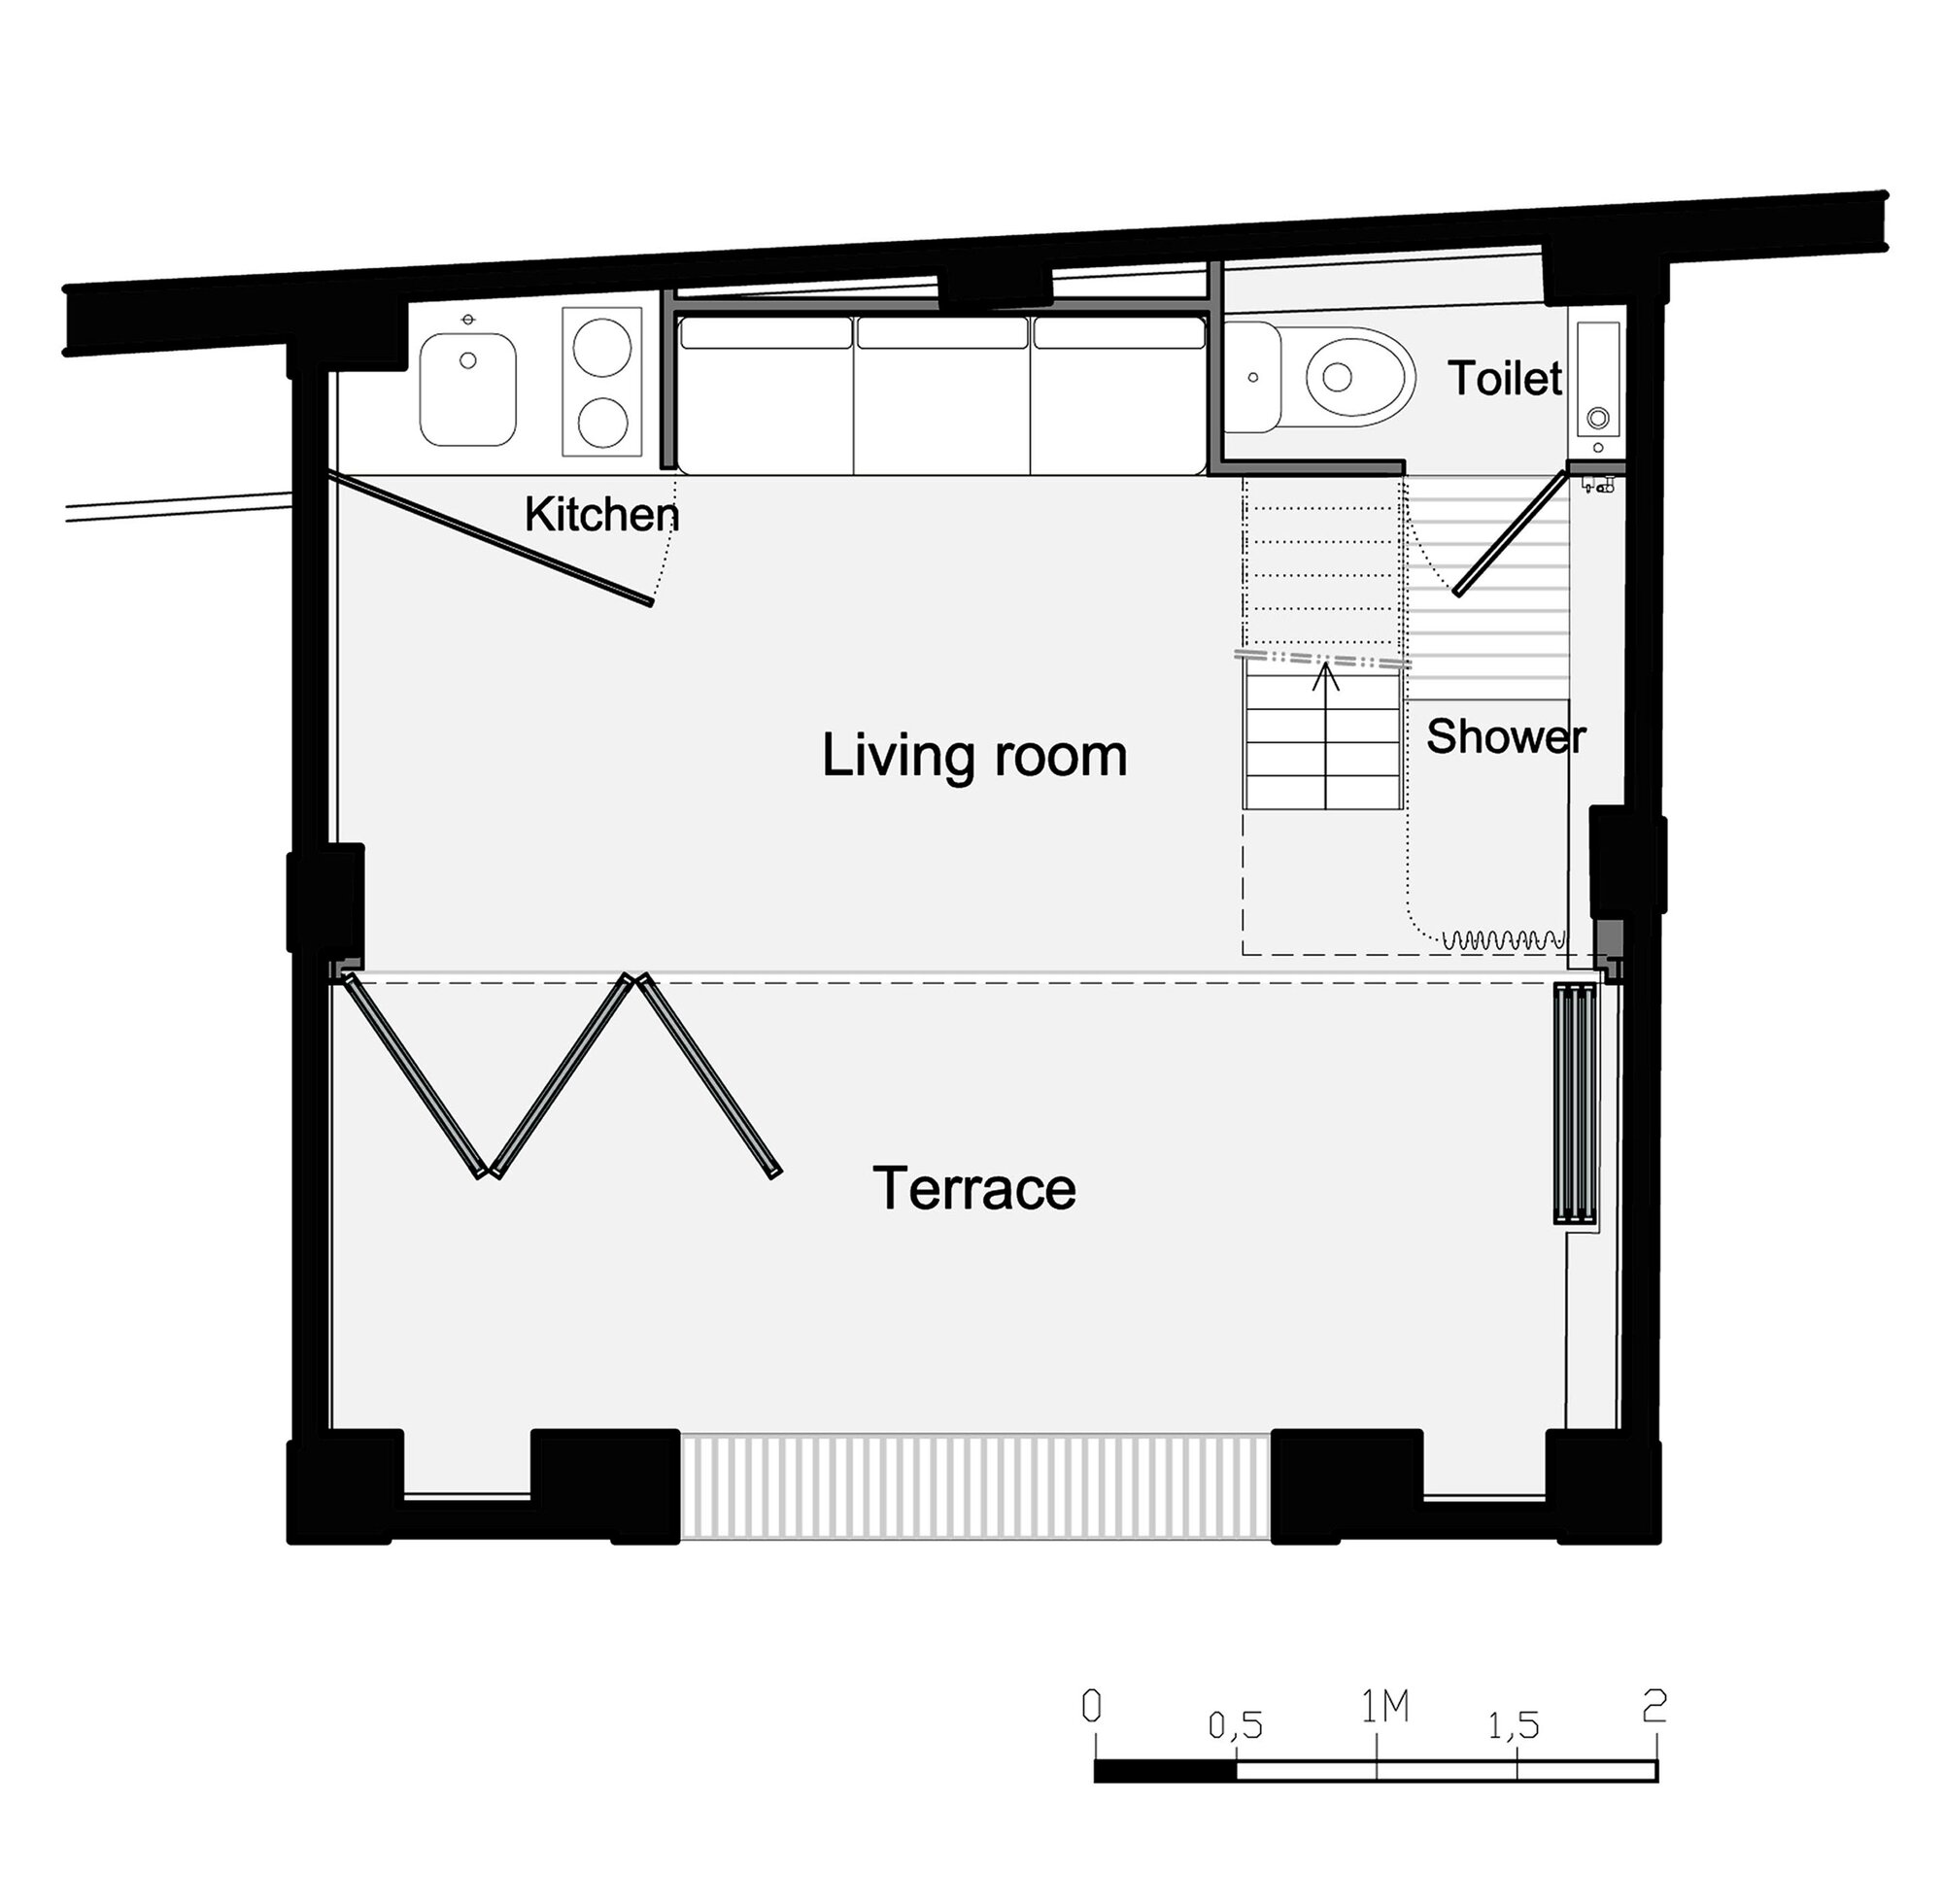 Pavillon d t from shack to modern guest house for Small shack plans